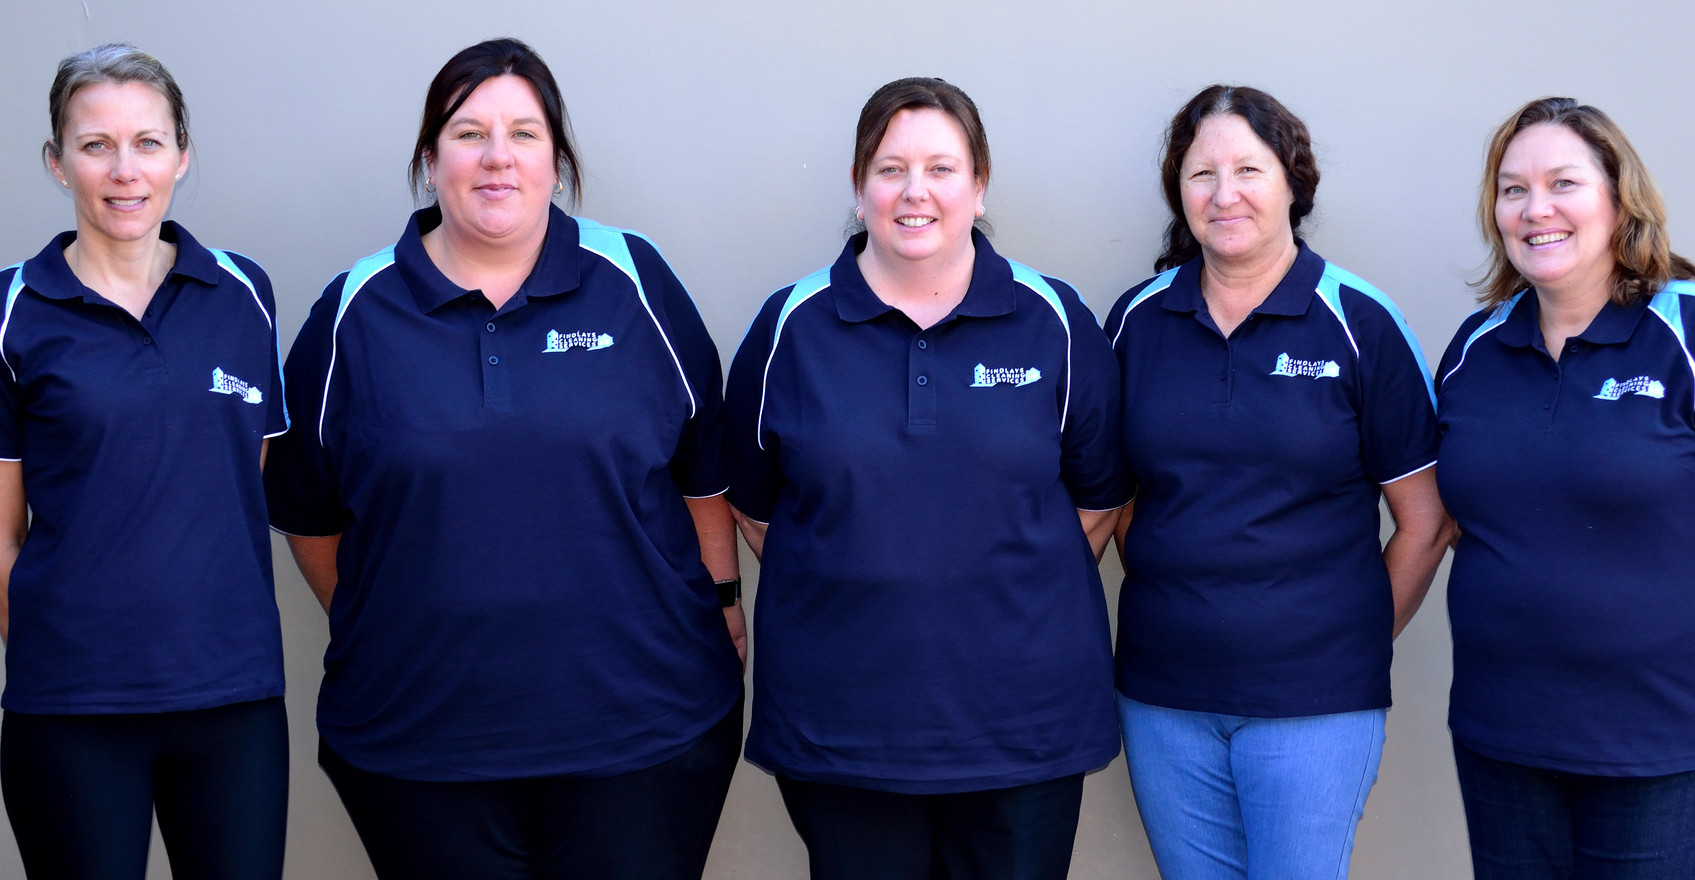 Meet the Team behind Findlay's Cleaning Services